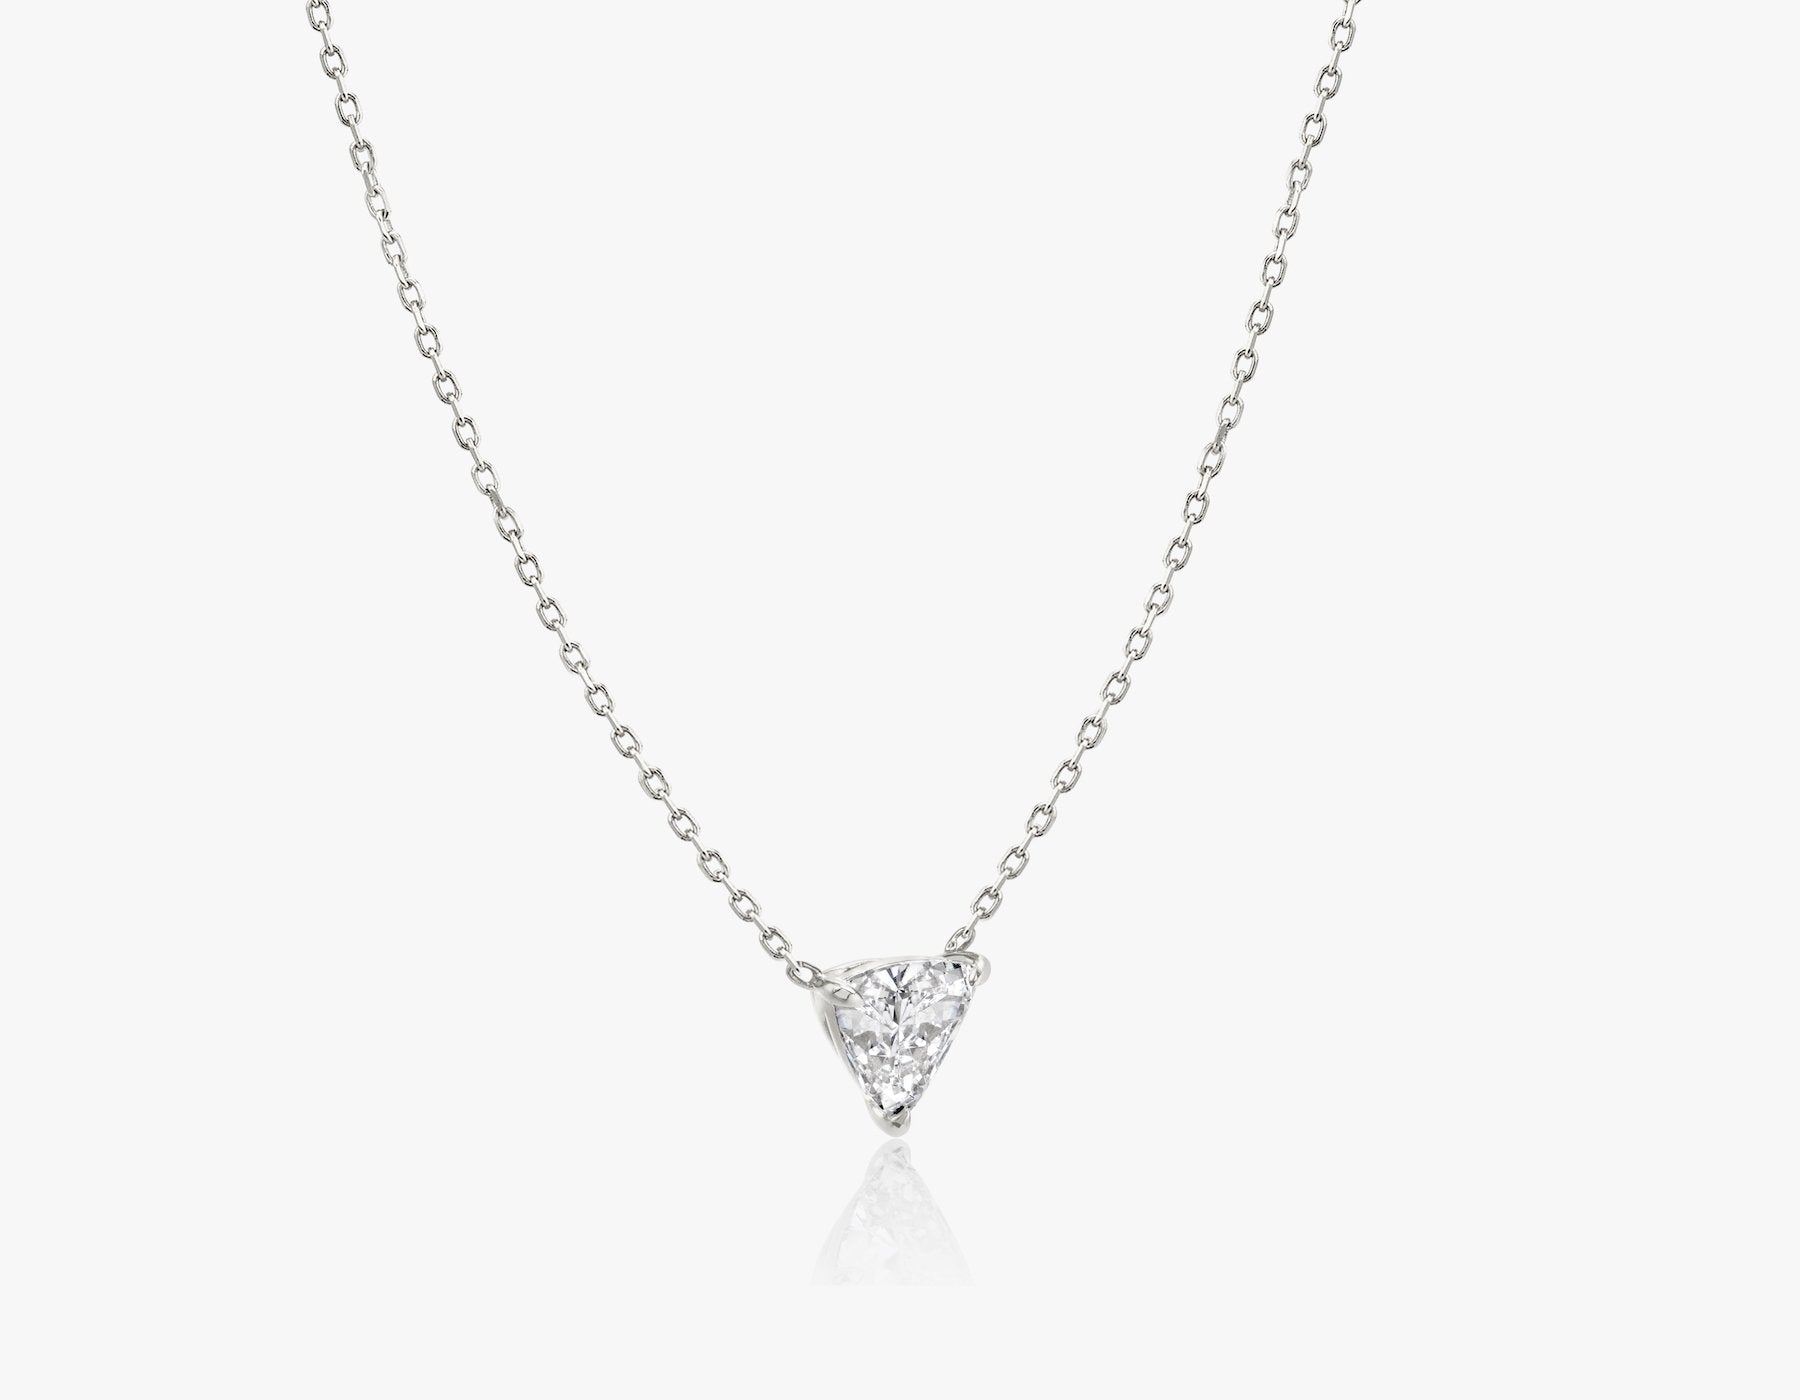 Vrai 14k solid gold Solitaire Trillion Diamond Necklace sustainably created triangle diamond prong set on simple chain side view, 14K White Gold